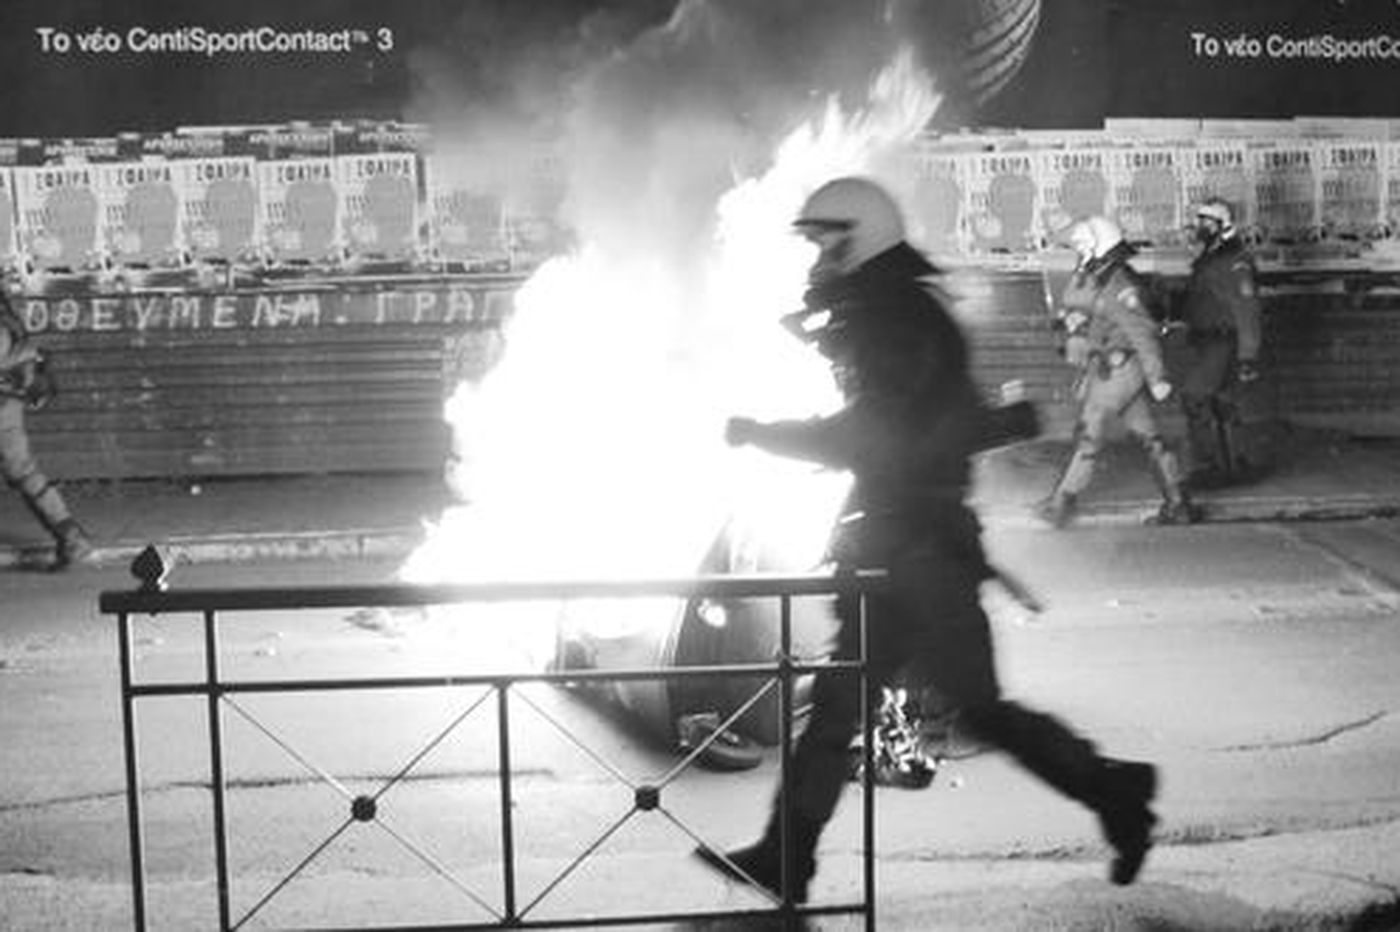 Fearful Greeks protest 'mistrusted' government